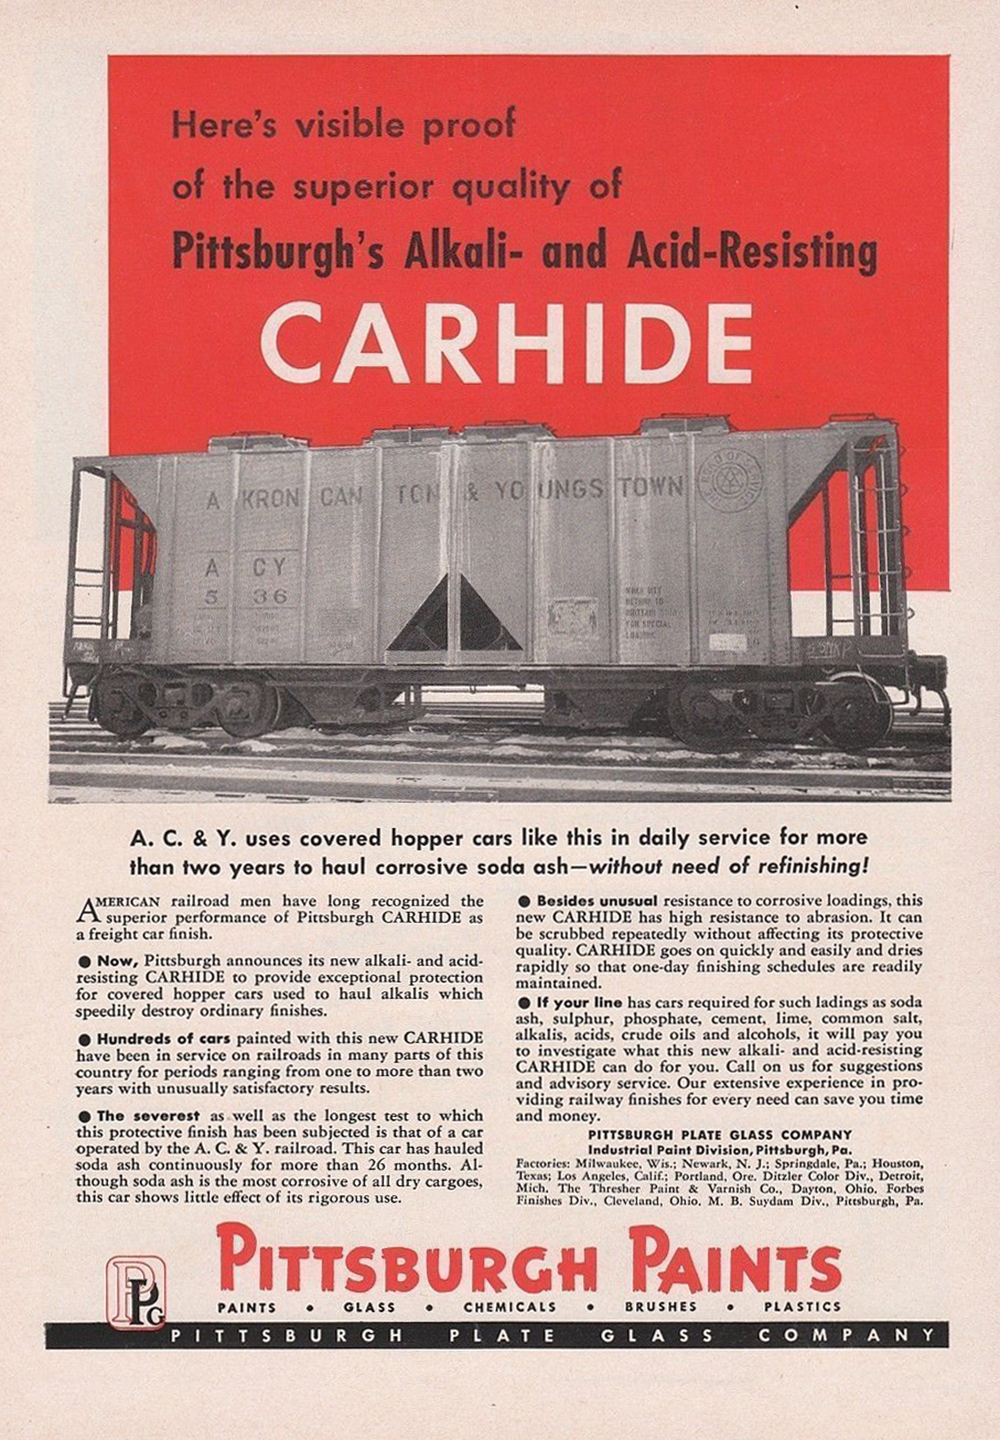 Carhide on the Akron Canton & Youngstown by PPG